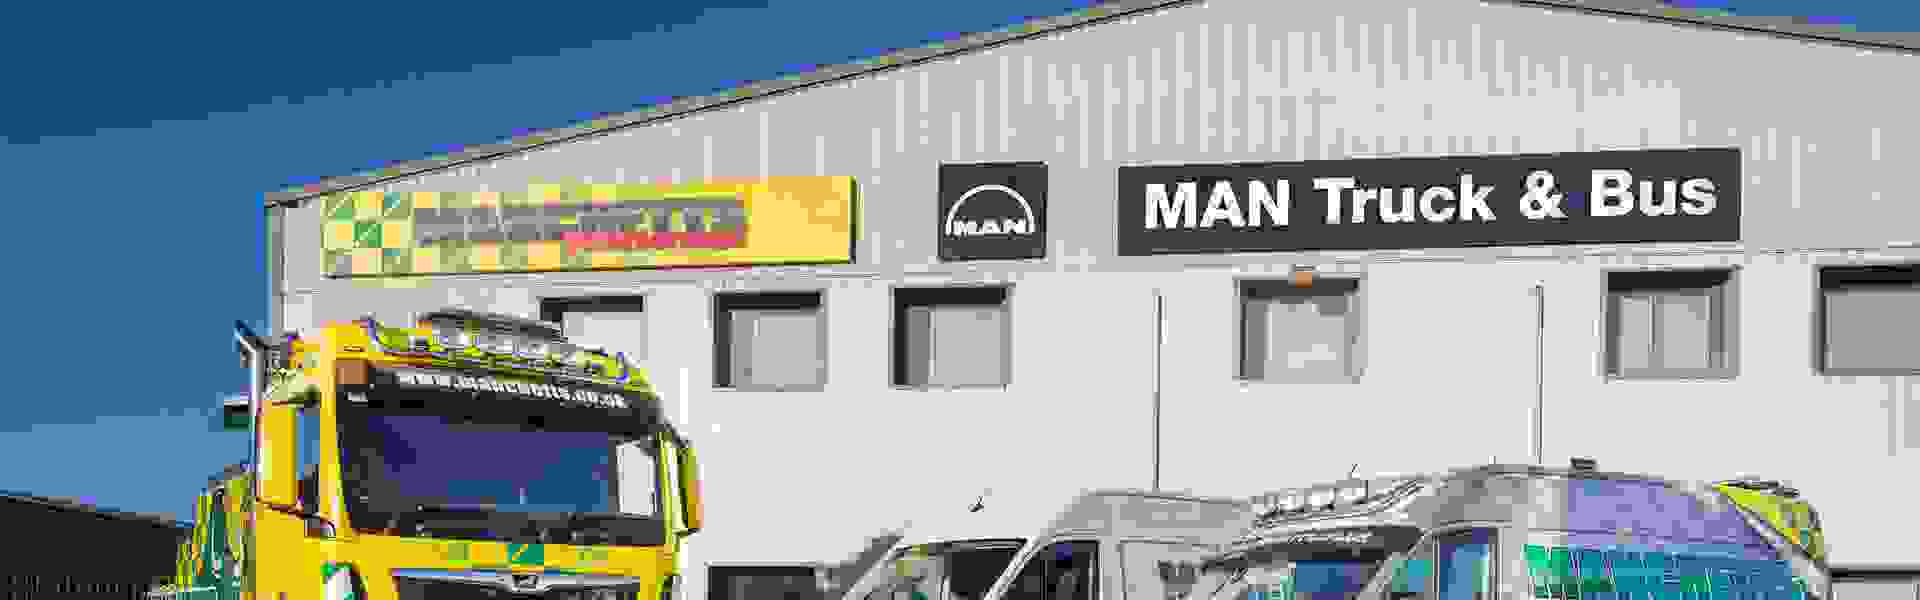 MAN Truck & Bus UK Ltd appoints Manchetts Group in Peterborough